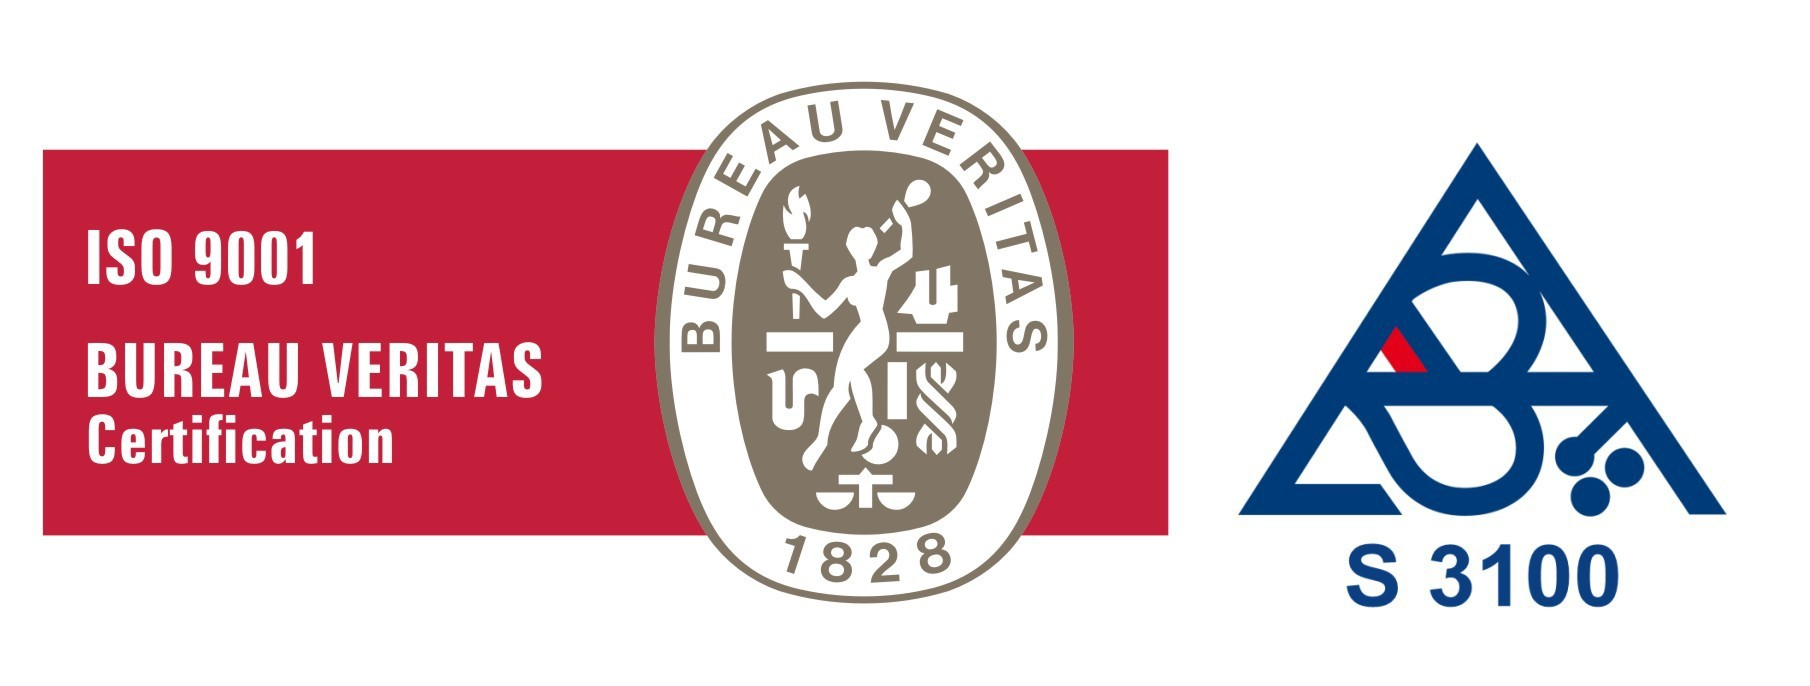 Certification mark BUREAU VERITAS